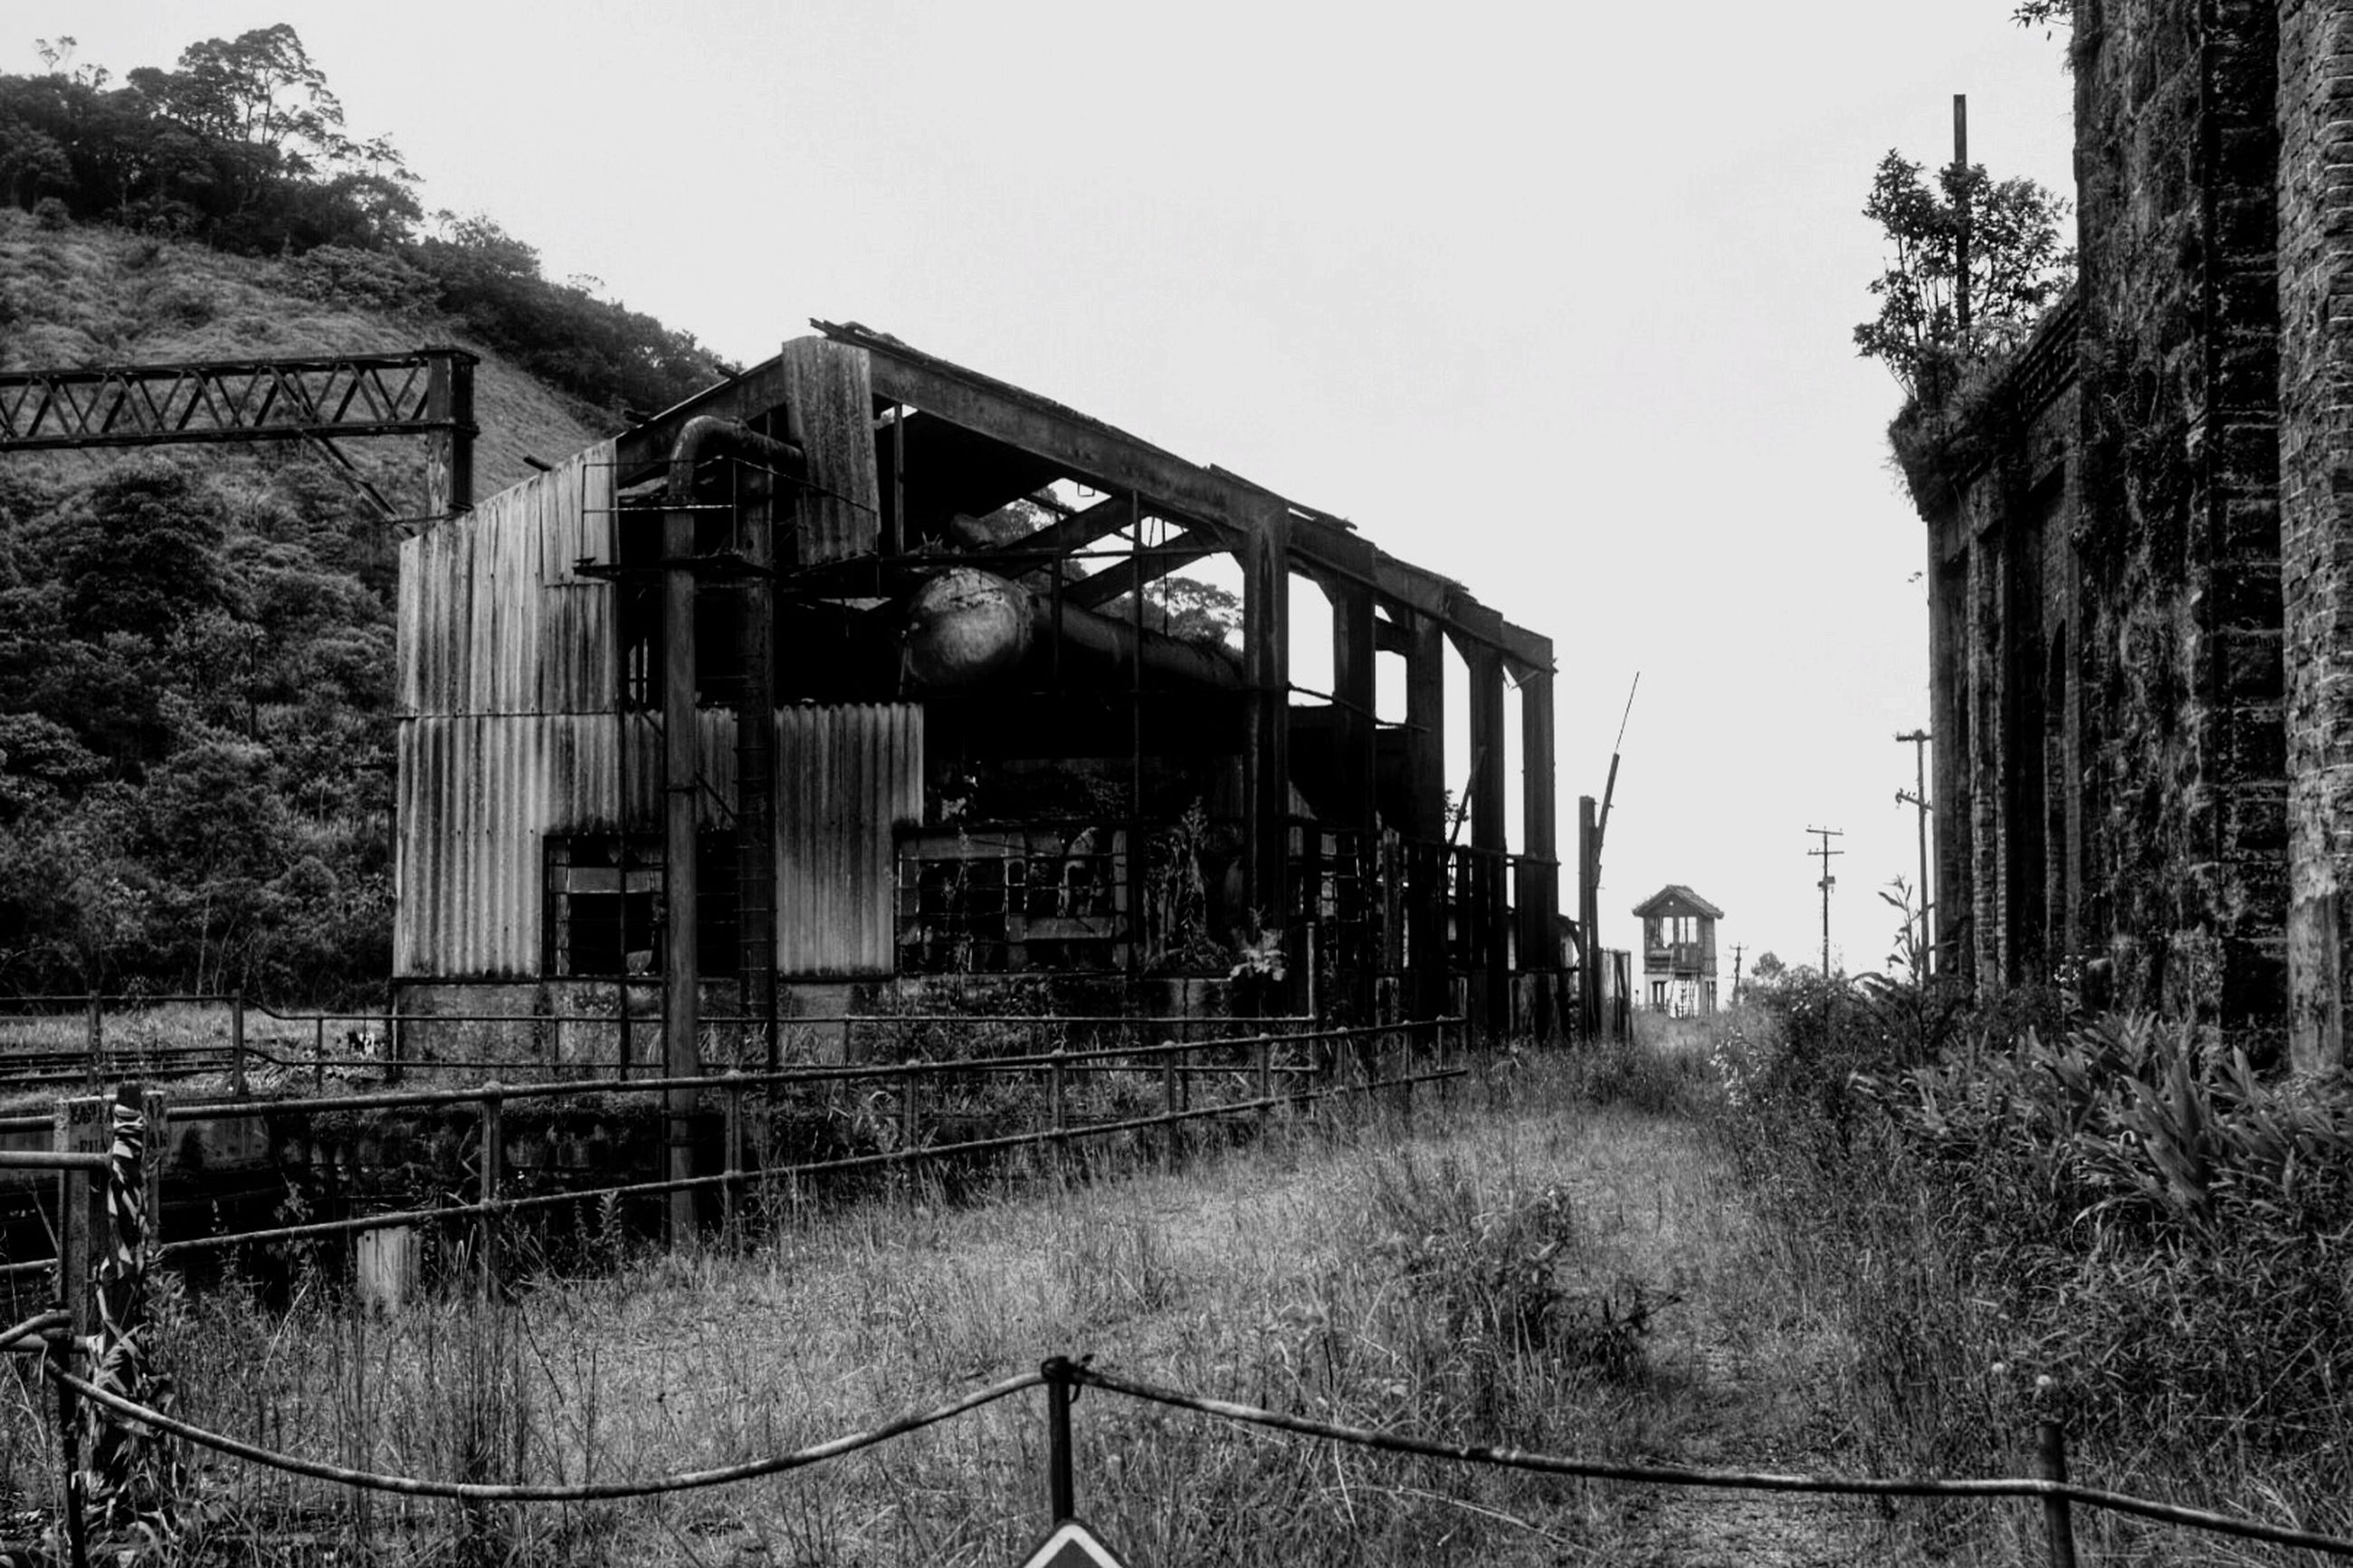 architecture, built structure, building exterior, clear sky, abandoned, obsolete, deterioration, old, run-down, damaged, tree, railroad track, rail transportation, house, day, metal, outdoors, rusty, construction site, no people